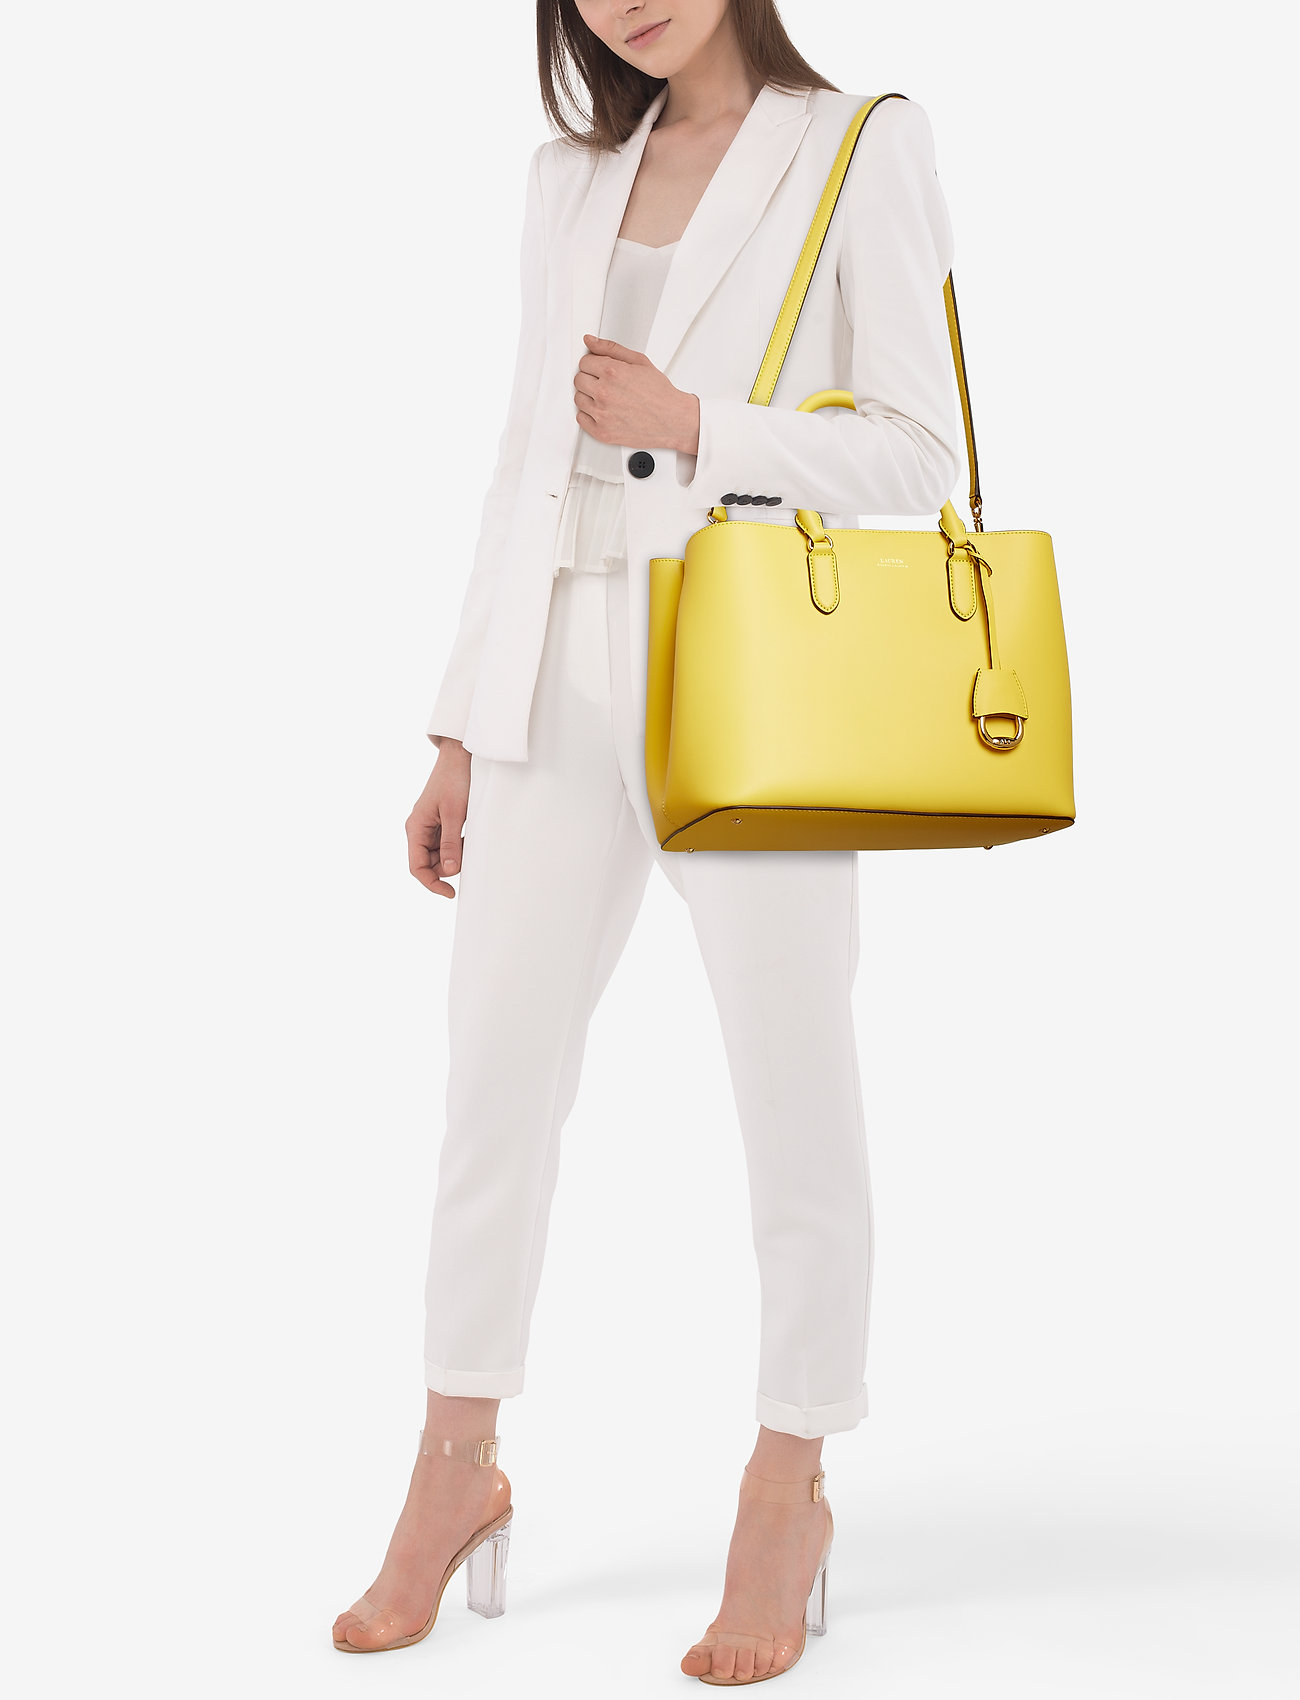 Lauren Ralph Lauren Leather Marcy Satchel - LEMON SORBET/ALPA